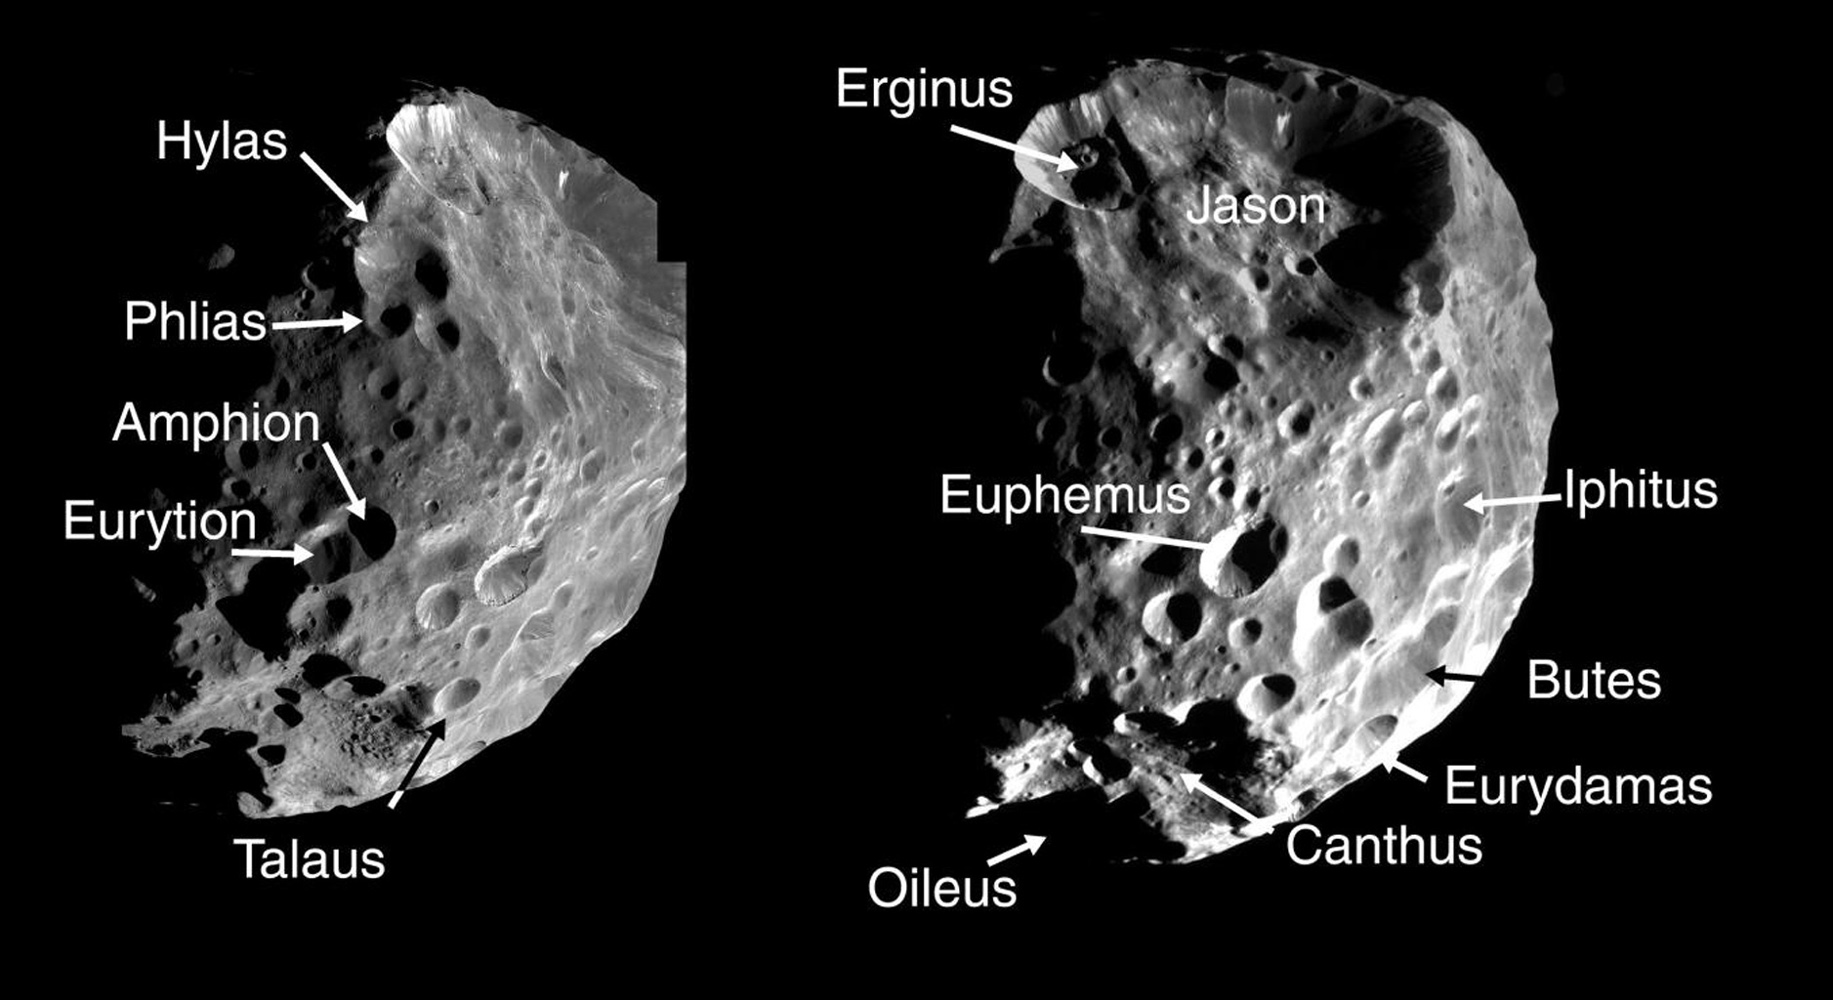 These two montages of images of Saturn's moon Phoebe, taken by NASA's Cassini spacecraft in June 2004, show the names provisionally assigned to 24 craters on this Saturnian satellite by the International Astronomical Union.